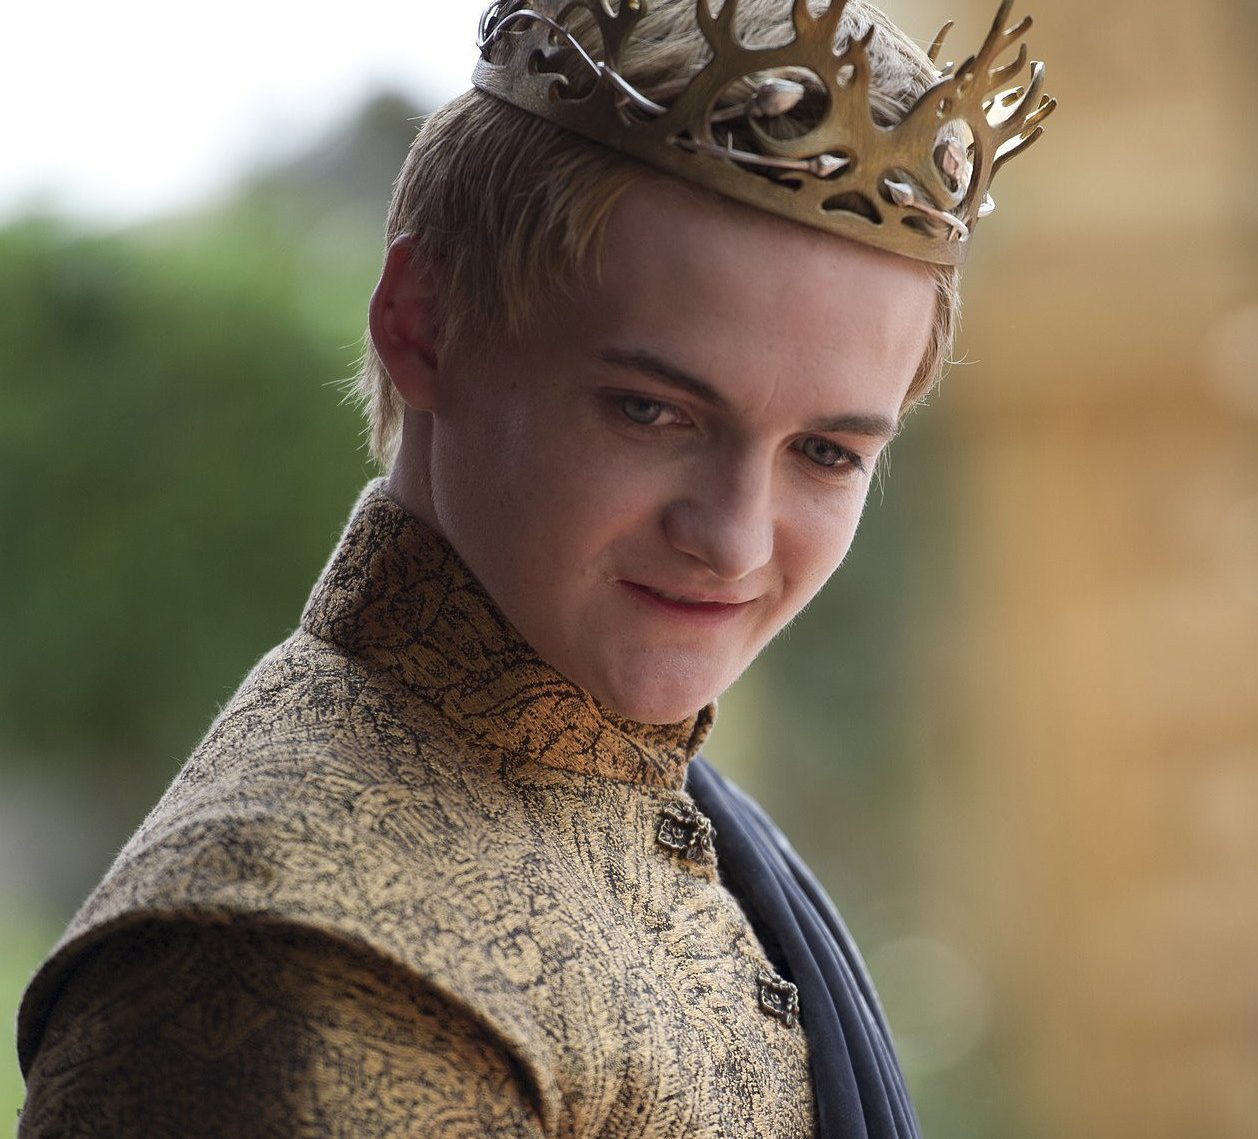 King Joffrey e1431228264970 1 e1626774907186 23 Celebrities Who Now Have 'Normal' Jobs